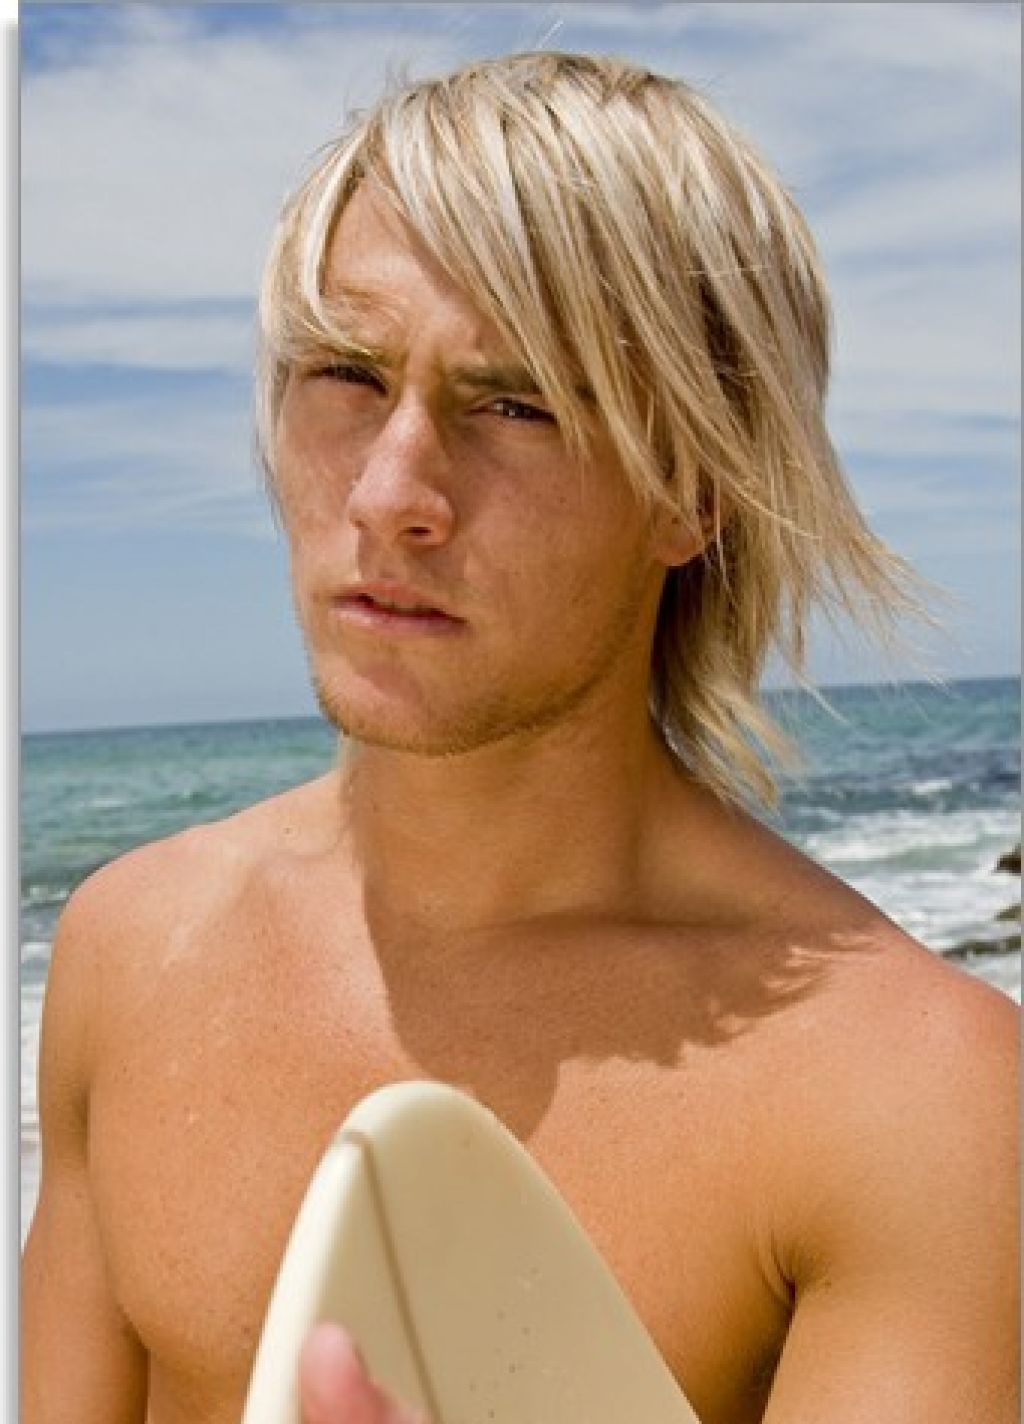 Blonde Surfer Hair Style Inspiration For Men Surfer Hair